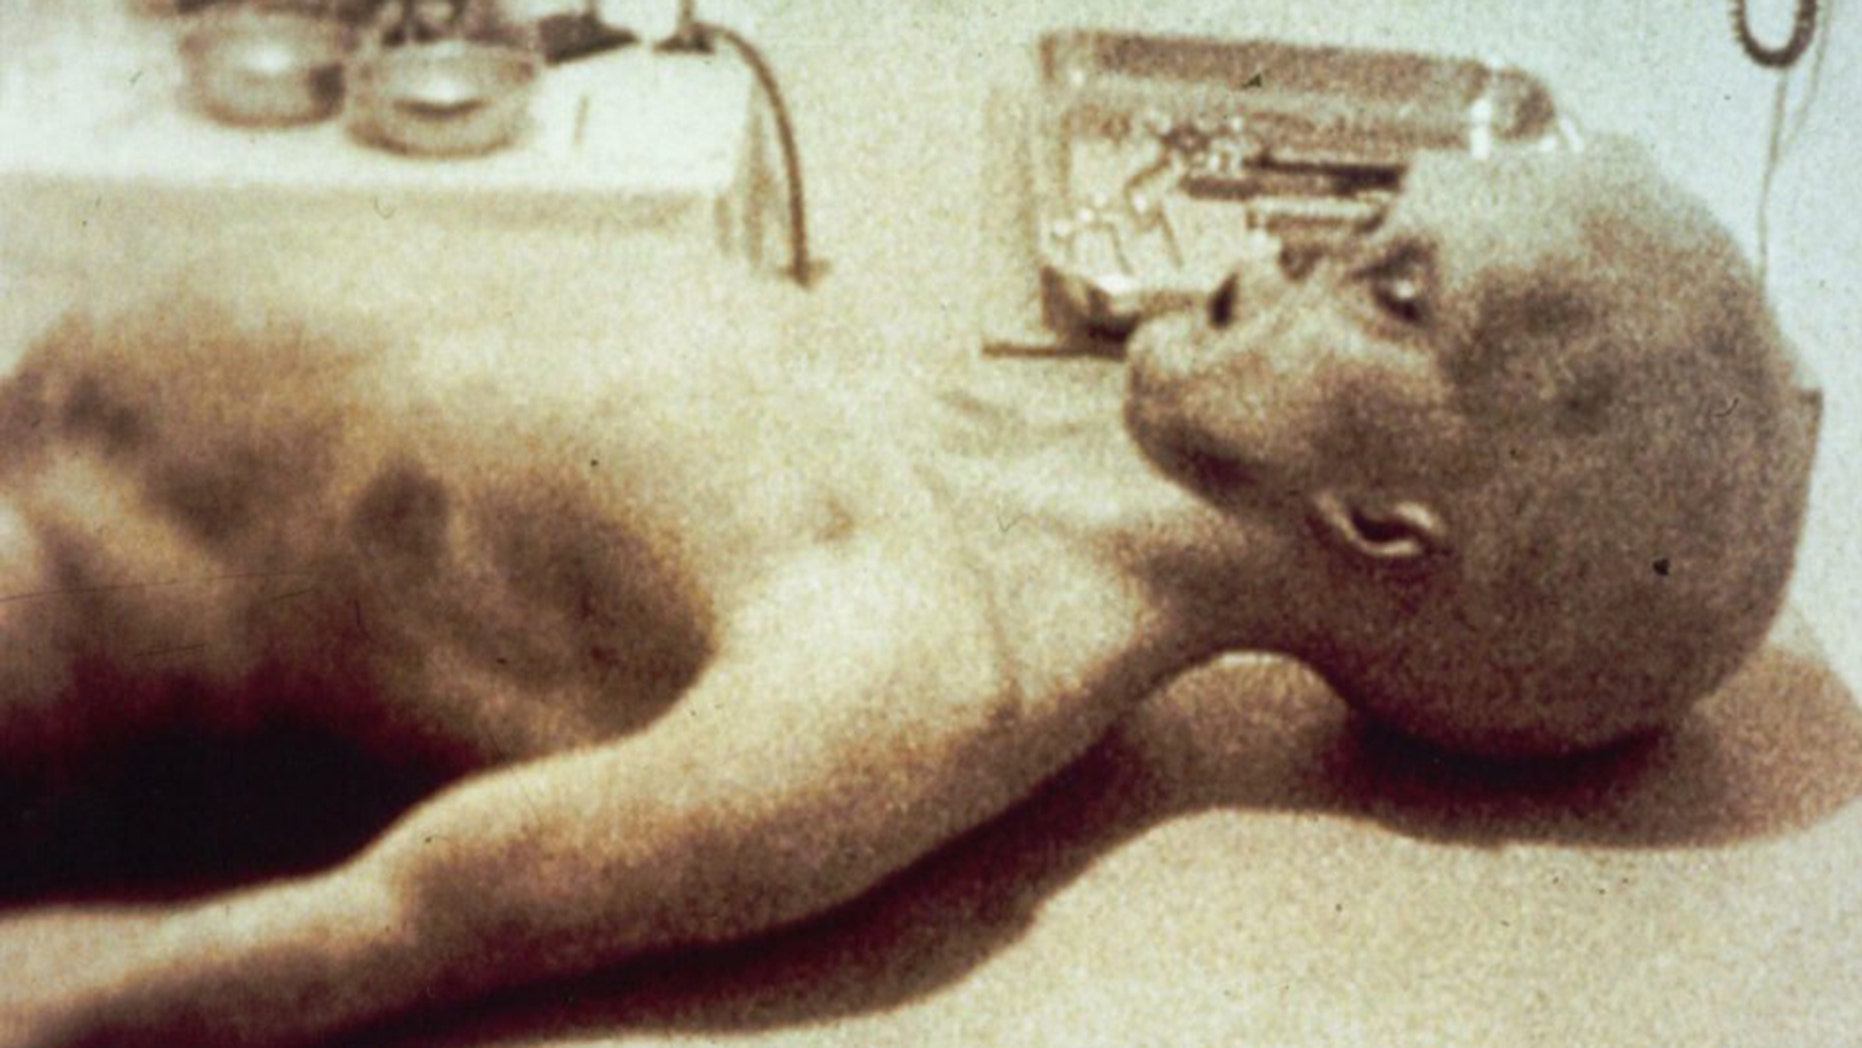 Filmmaker Spyros Melaris led the team behind the now infamous footage claiming to show an alien from the1947 Roswell UFO crashbeing dissected by medics.